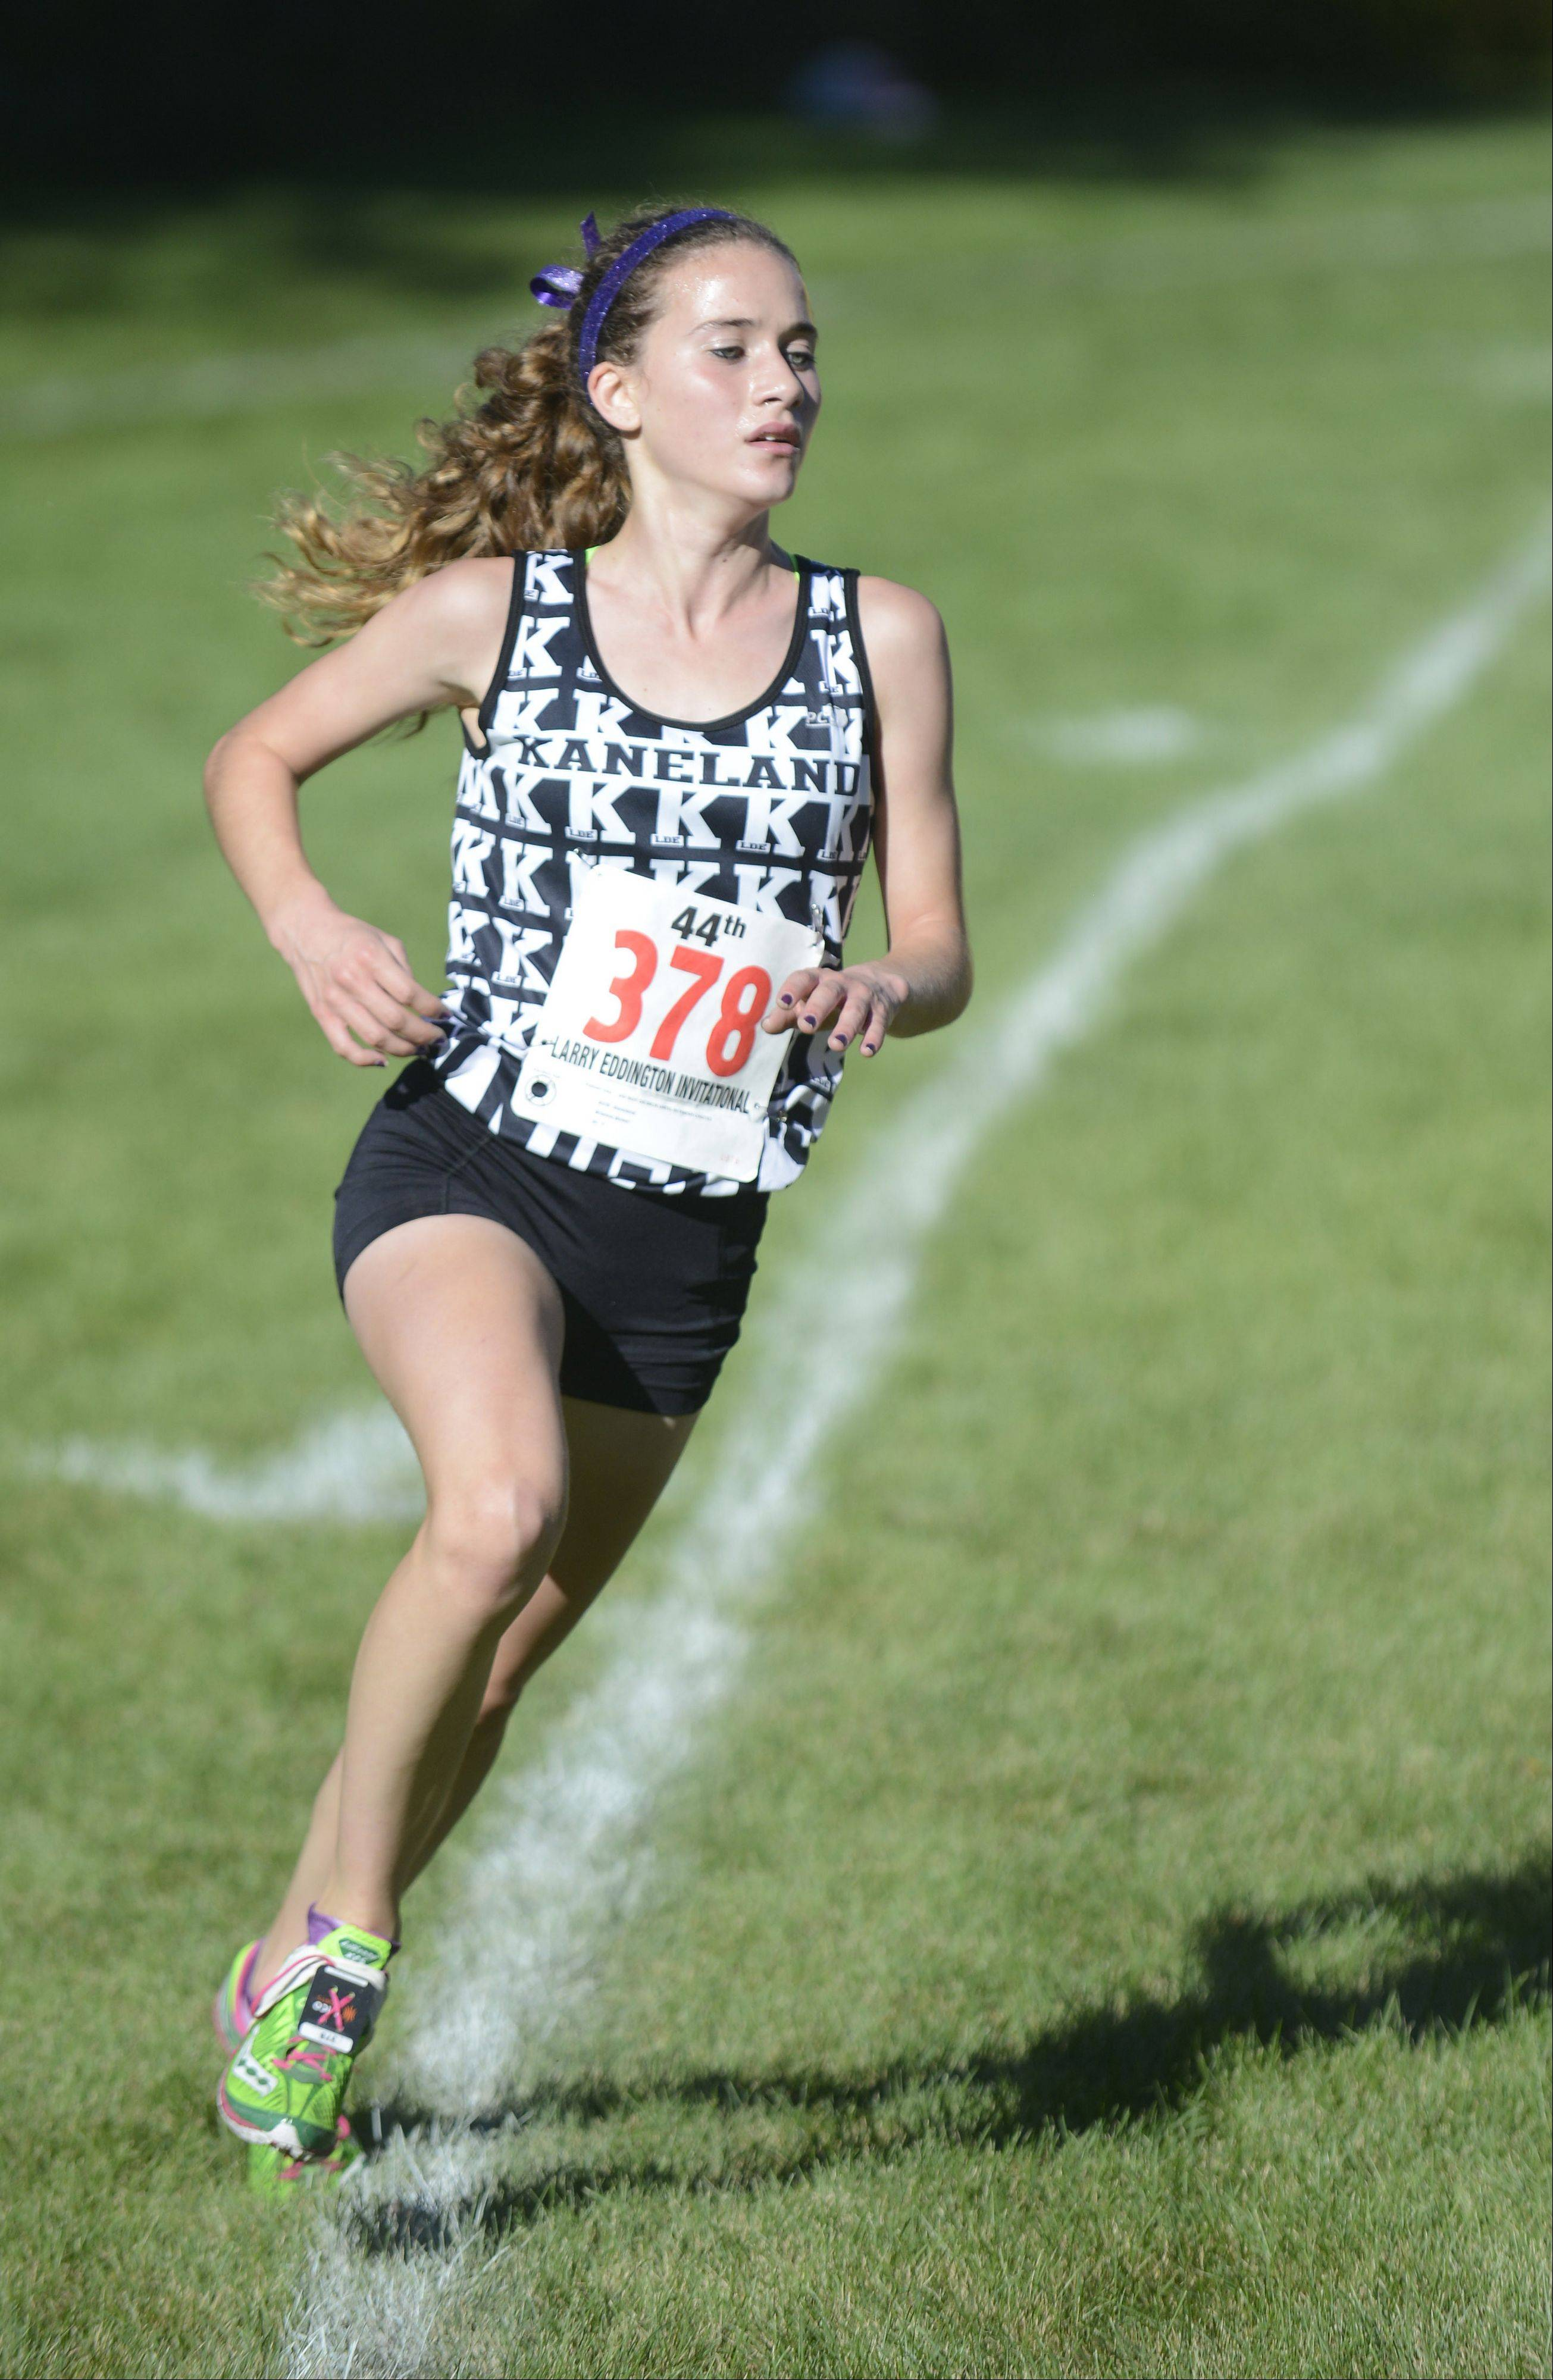 Kaneland�s Brianna Bower takes fifth place at the Kaneland Invitational cross country meet in Elburn on Saturday, September 21.